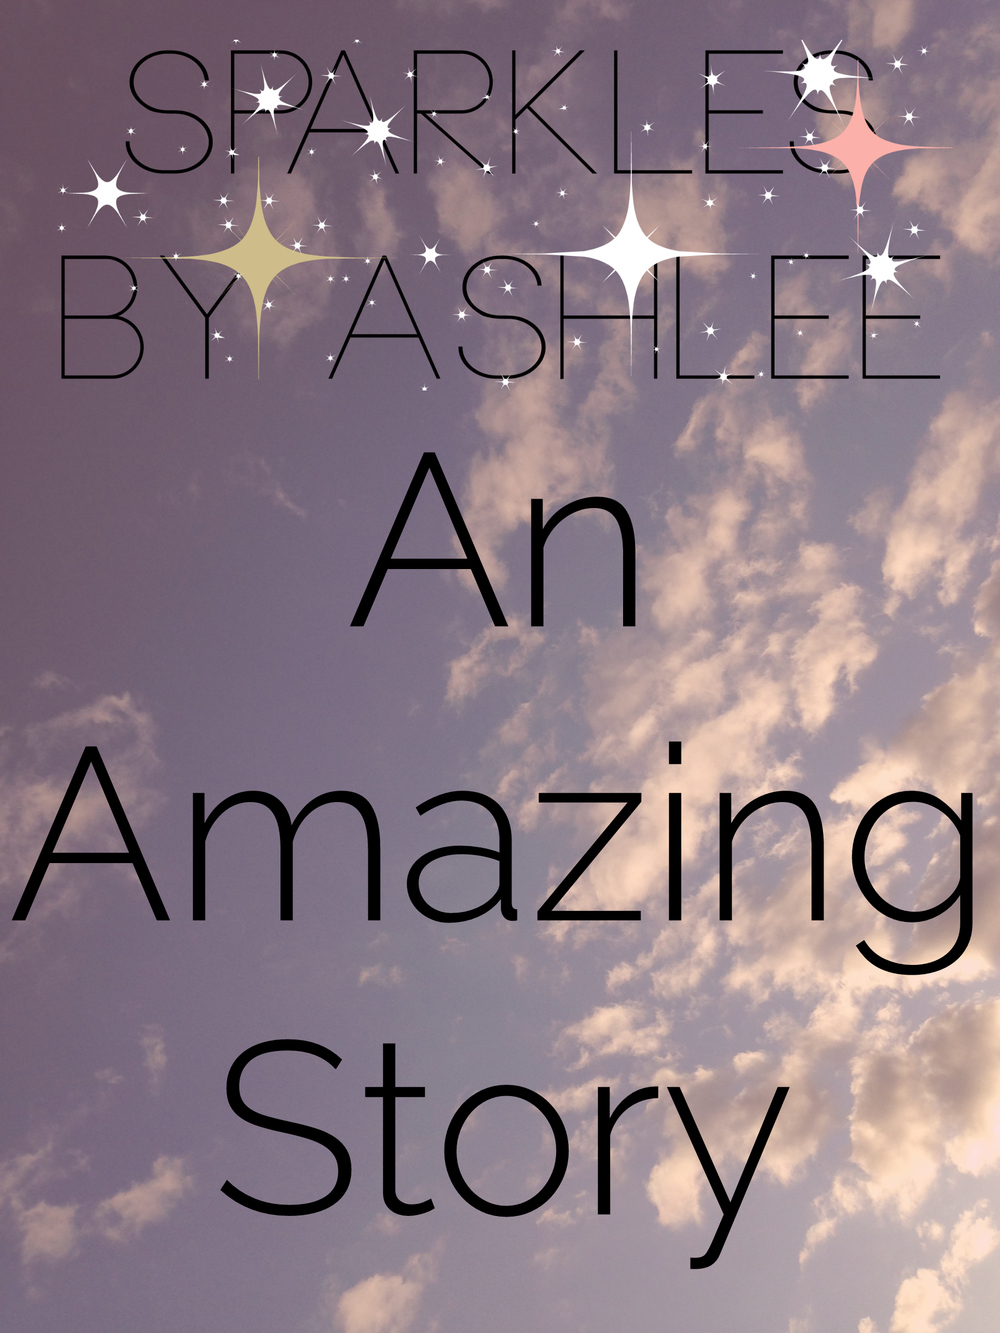 An-Amazing-Story-Sparkles-by-Ashlee.jpg